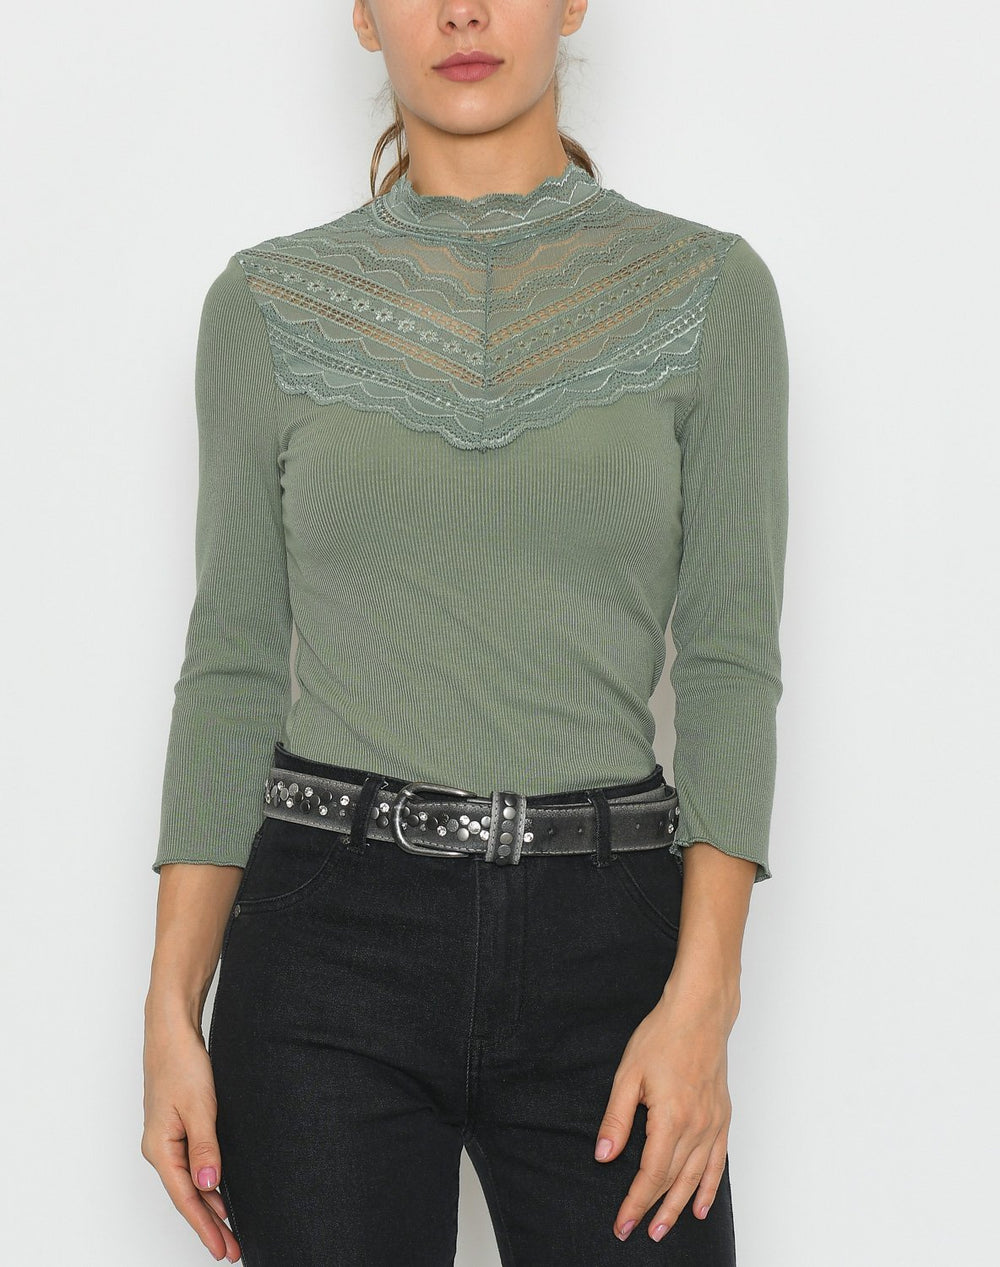 B.young BYtoella lace t-shirt 2 sea green - Online-Mode